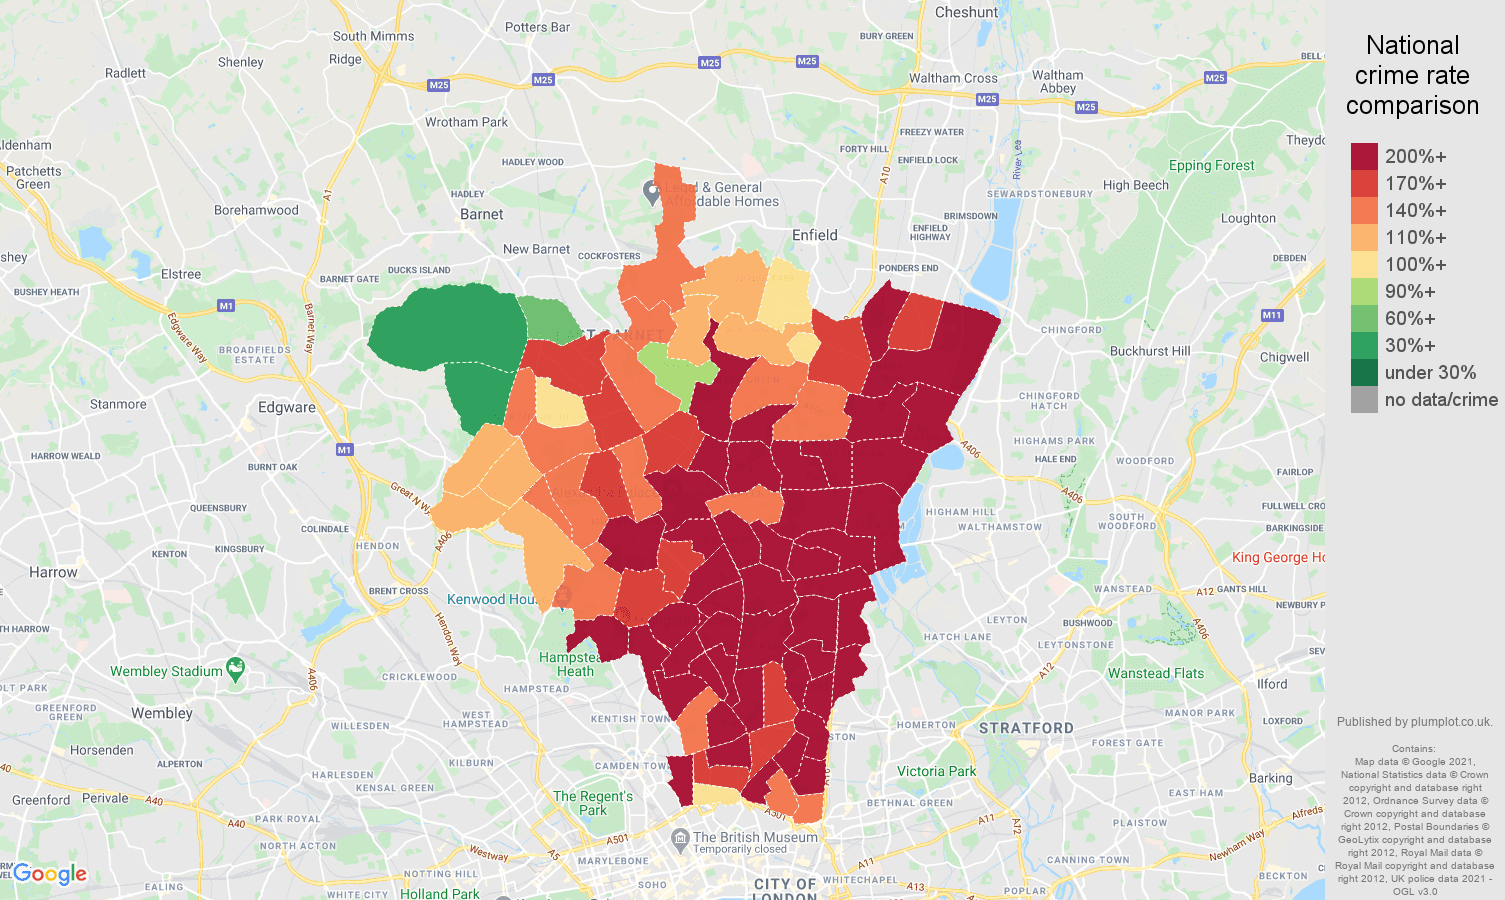 North London antisocial behaviour crime rate comparison map